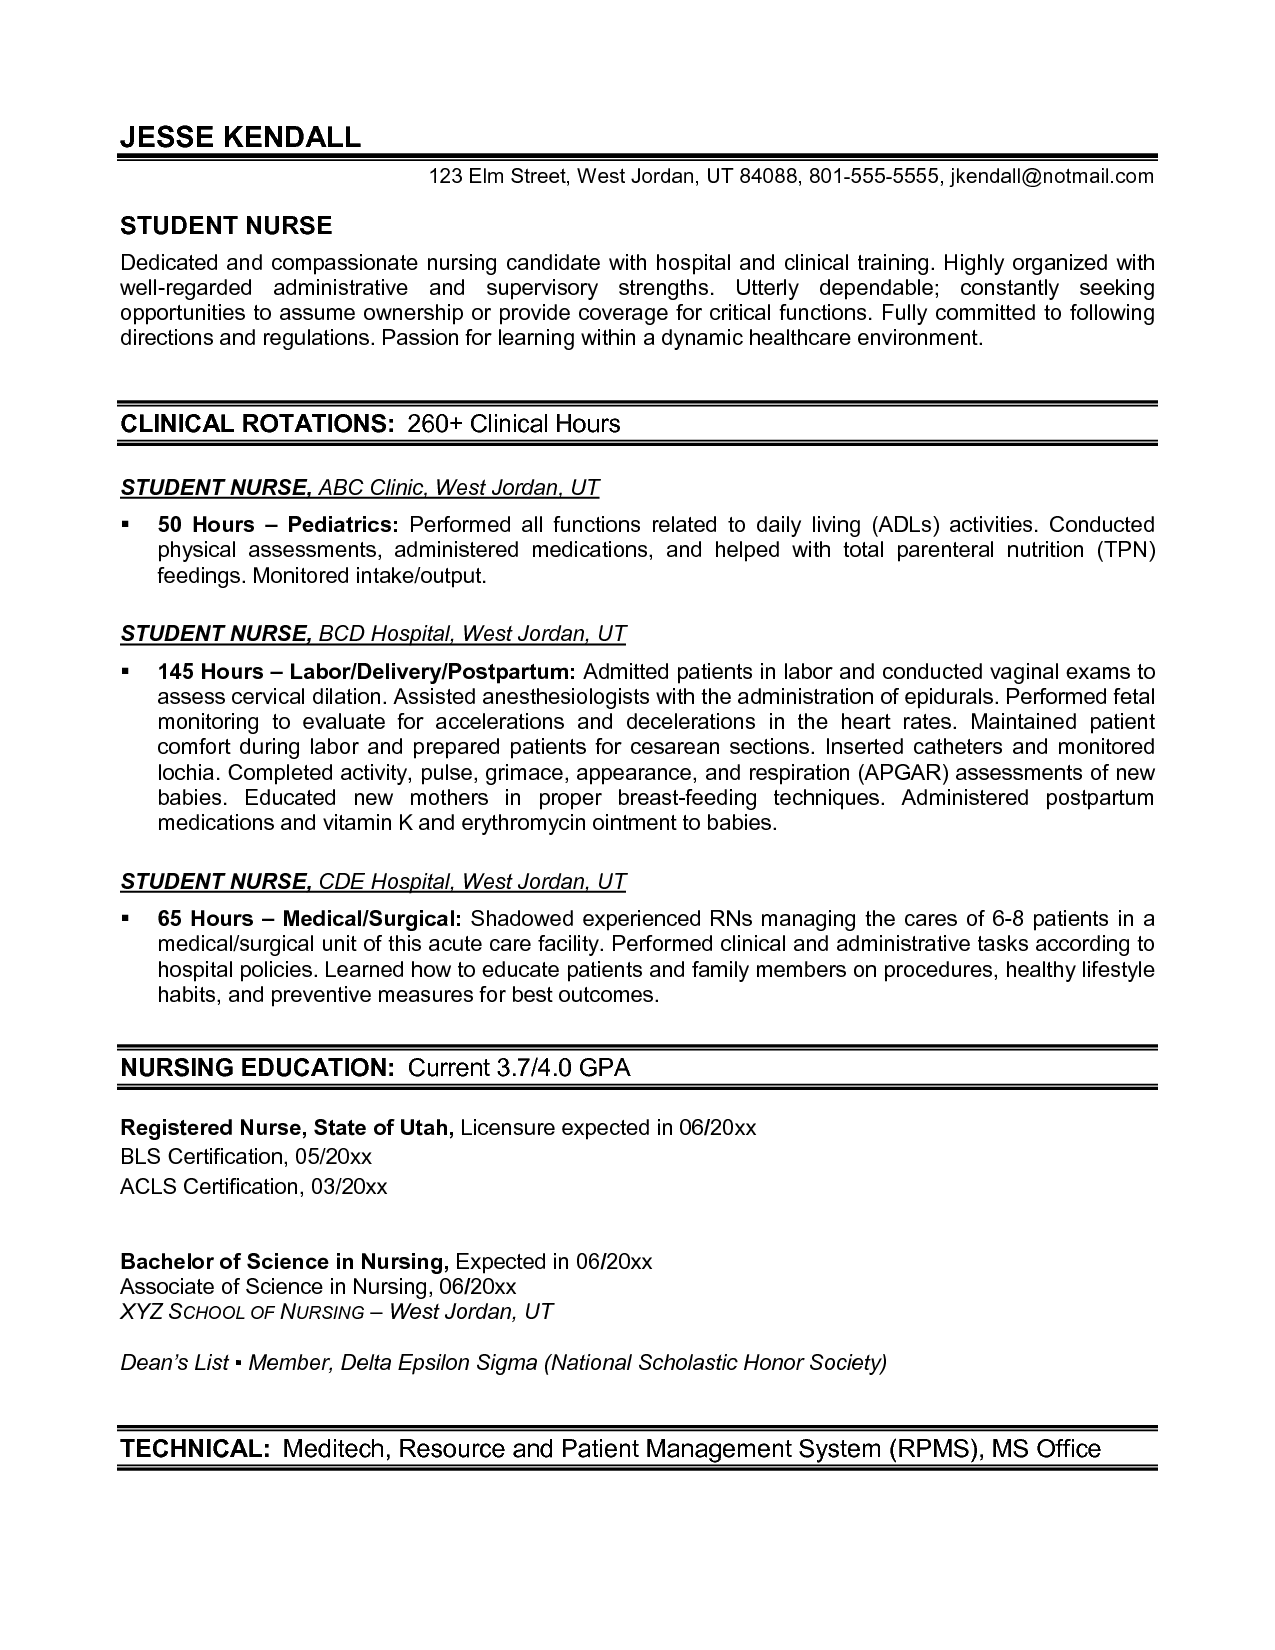 Professional Nursing Resume Resume Template Nursing  Nursing  Pinterest  Nursing Resume